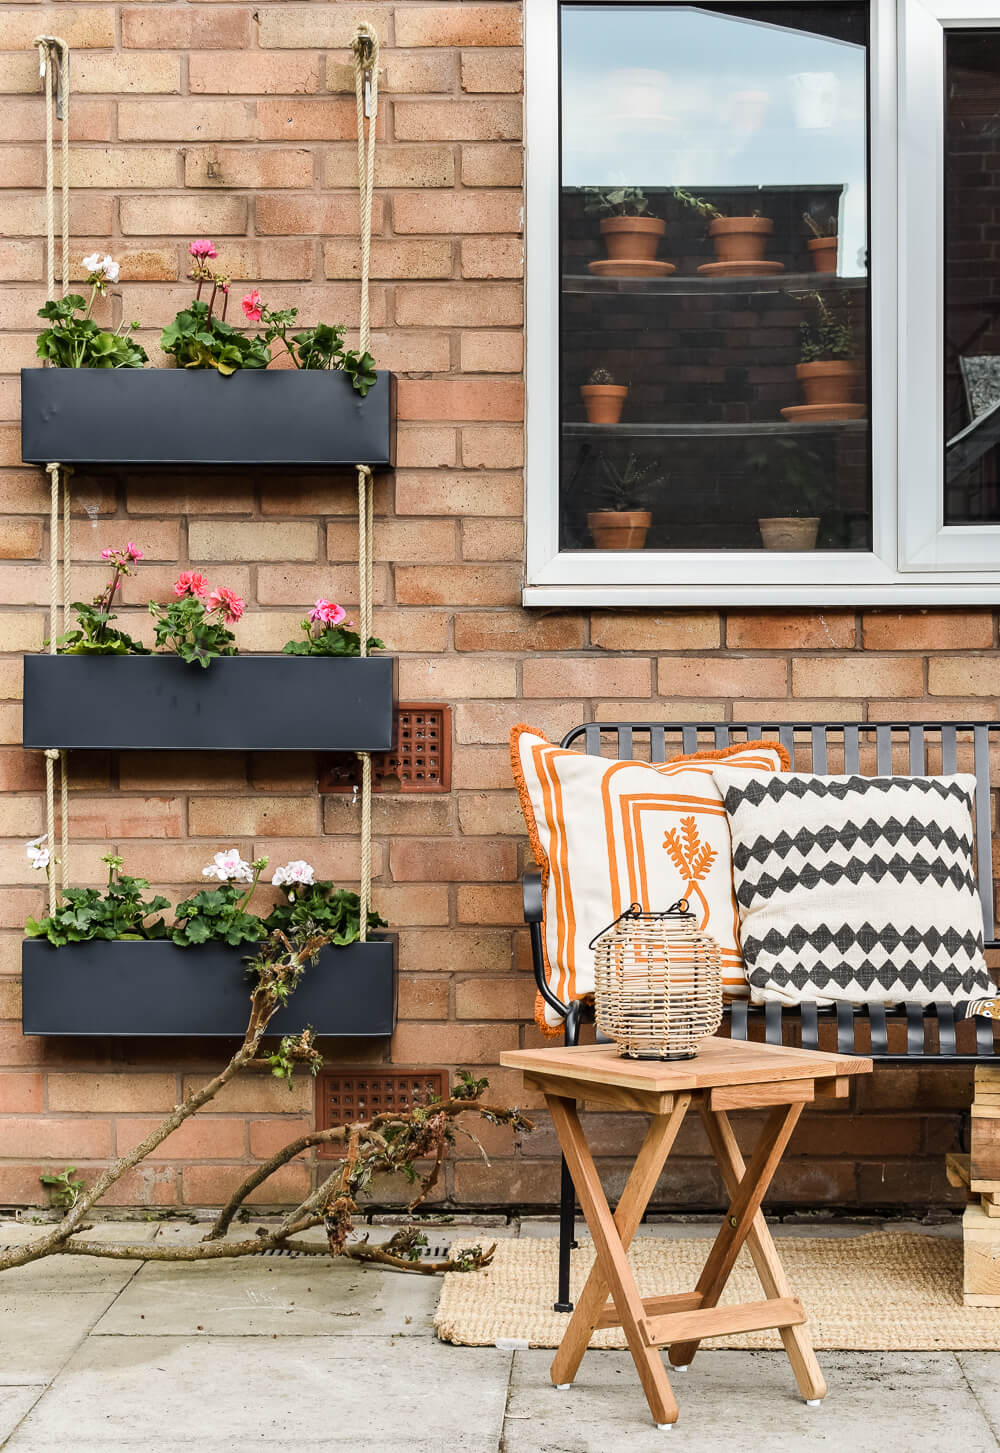 Black outdoor hanging planter on a brick wall in the garden